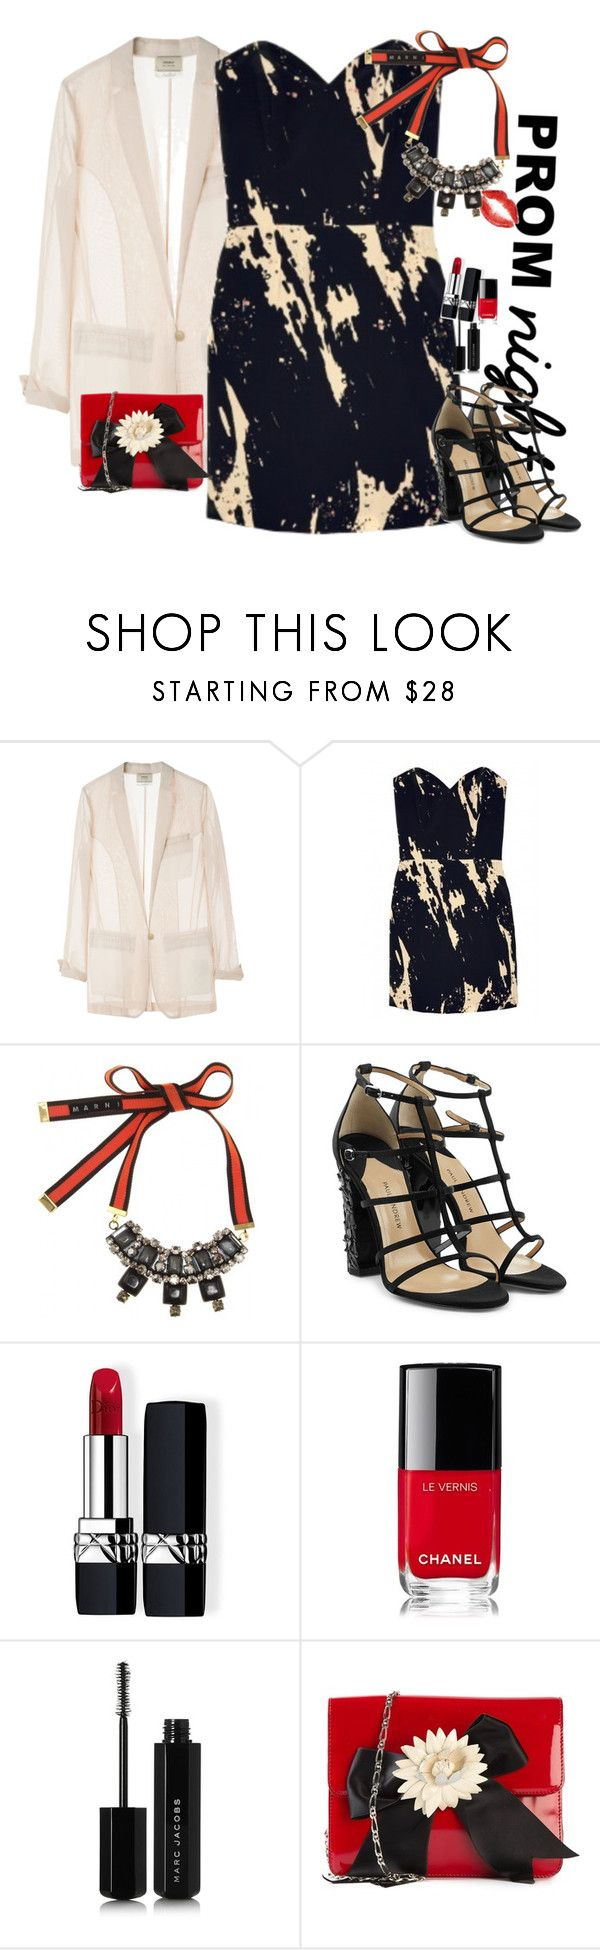 """Prom"" by claire86-c ❤ liked on Polyvore featuring Giada Forte, Olivia Rubin, Marni, Paul Andrew, Christian Dior, Chanel, Marc Jacobs, Moschino, Prom and contest"